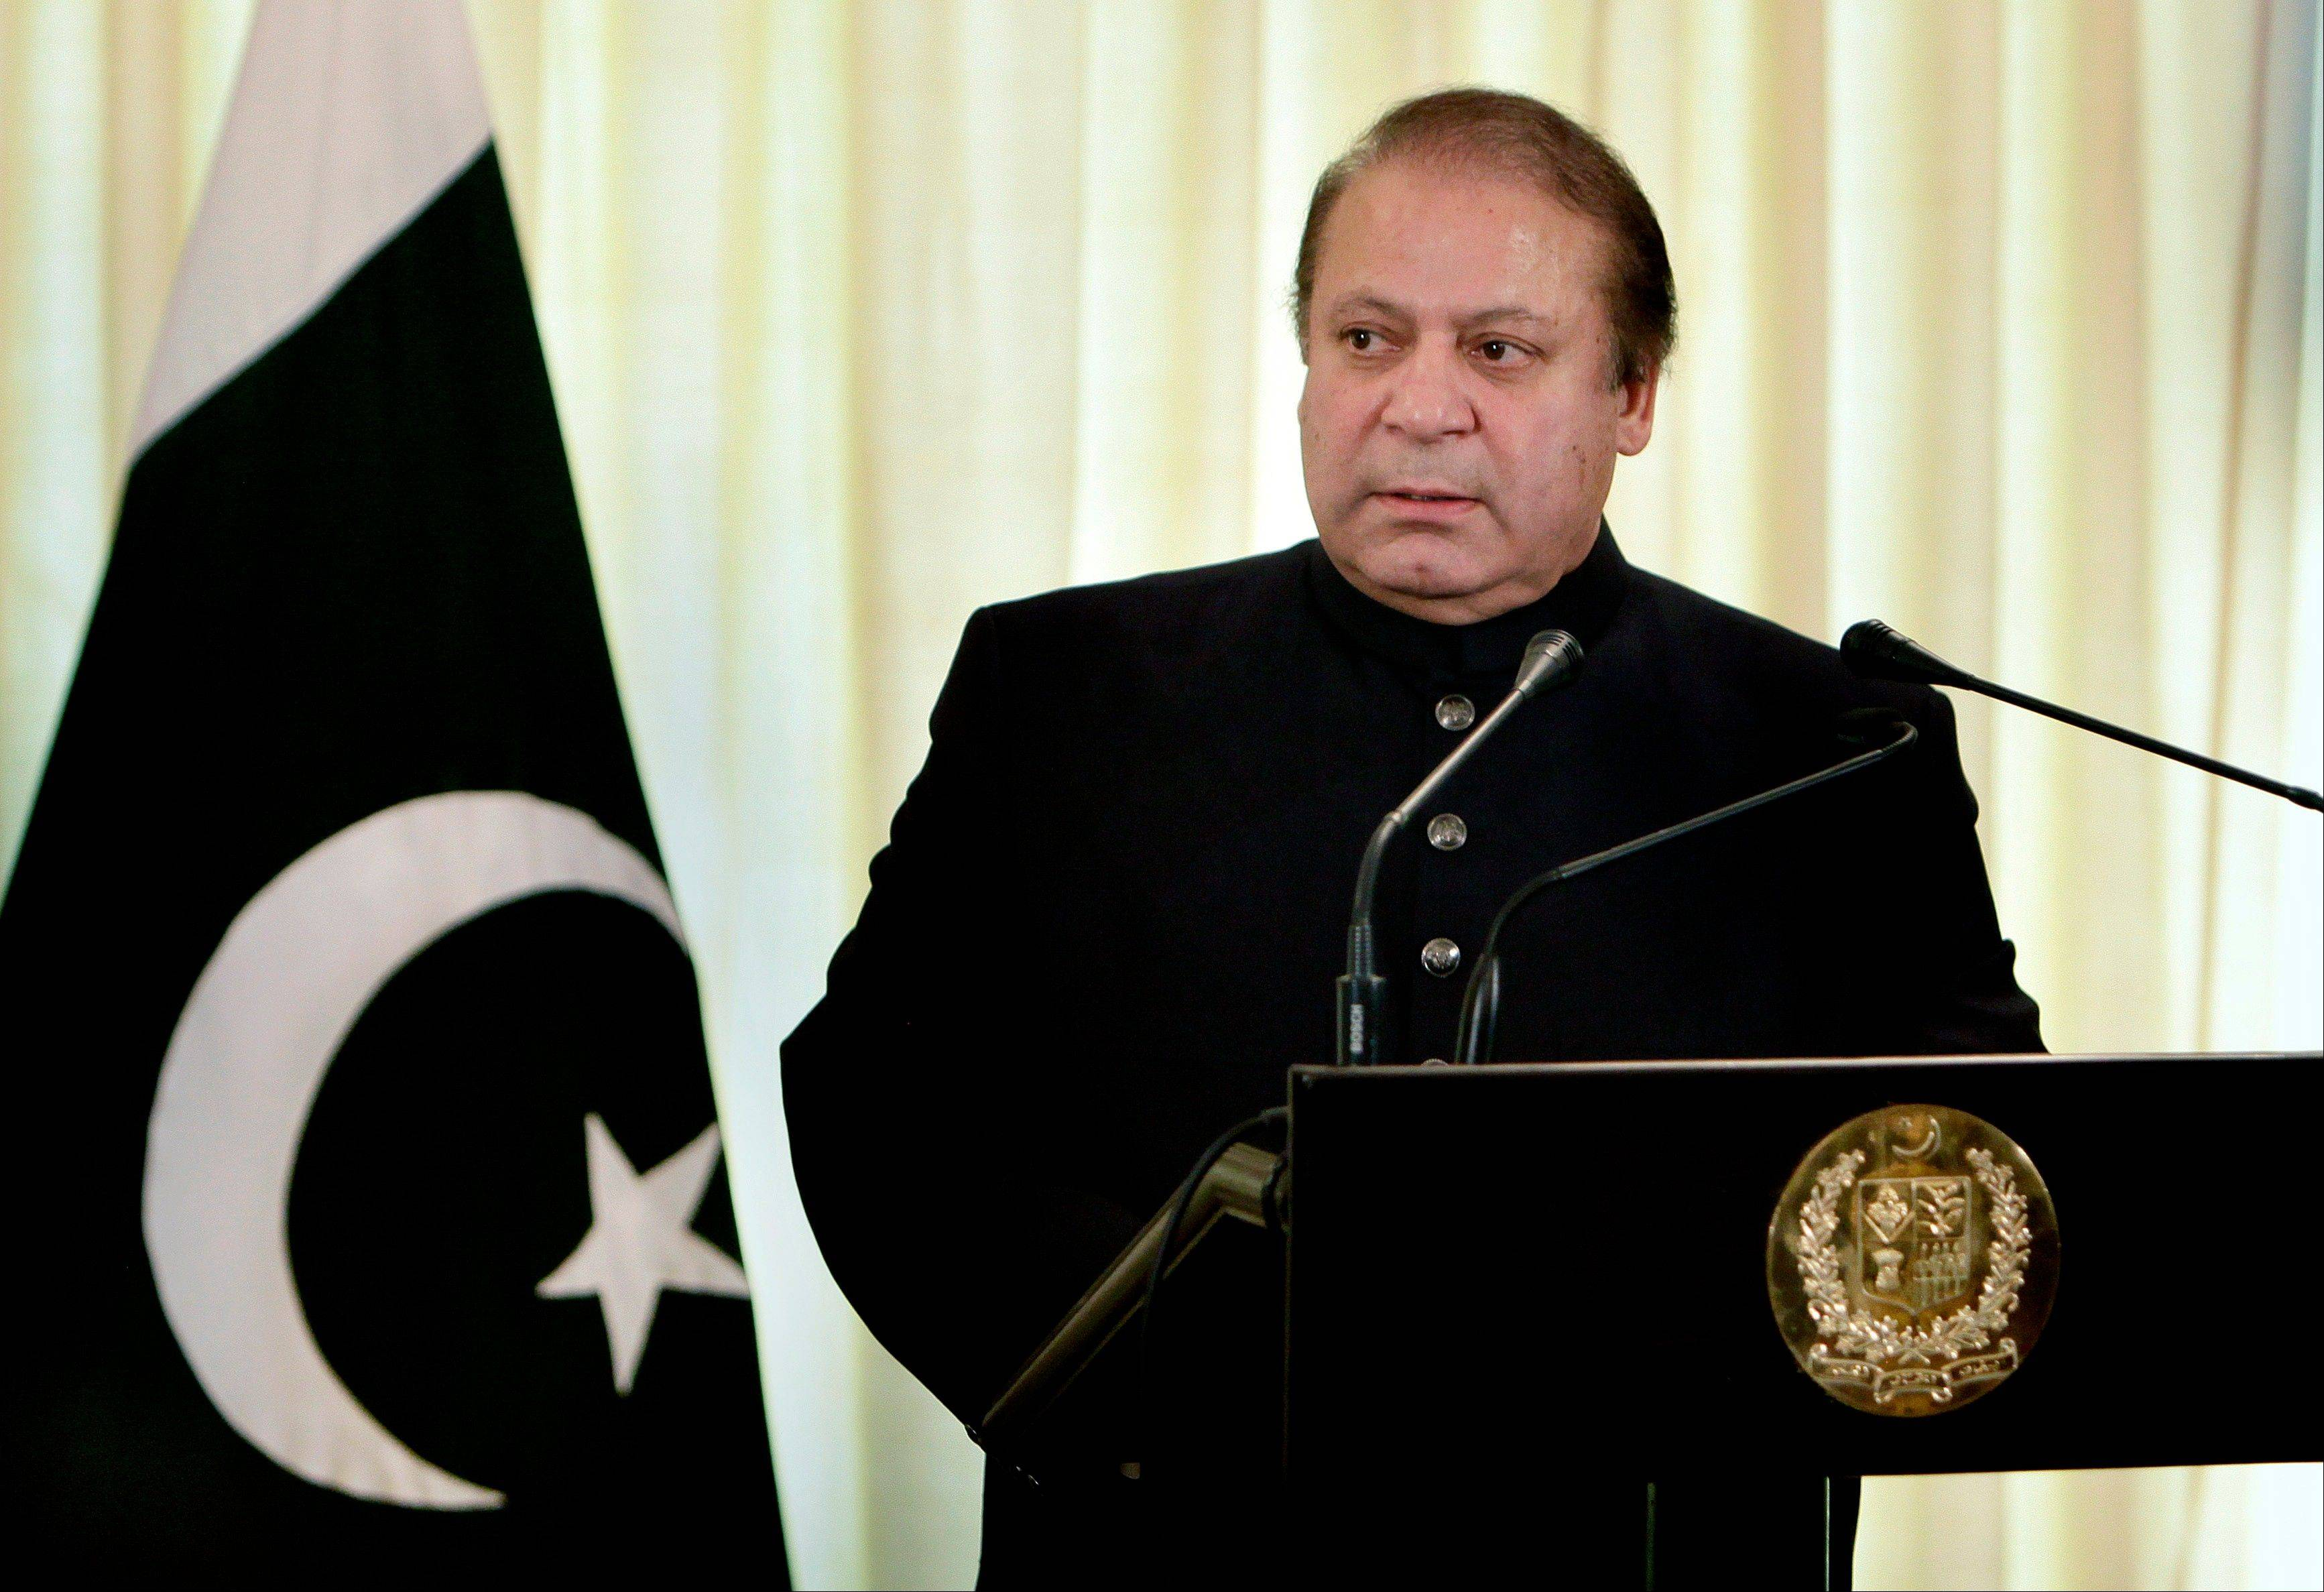 Associated Press/Aug. 26, 2013 Pakistani Prime Minister Nawaz Sharif pauses during a joint press conference in Islamabad, Pakistan, with Afghan President Hamid Karzai.